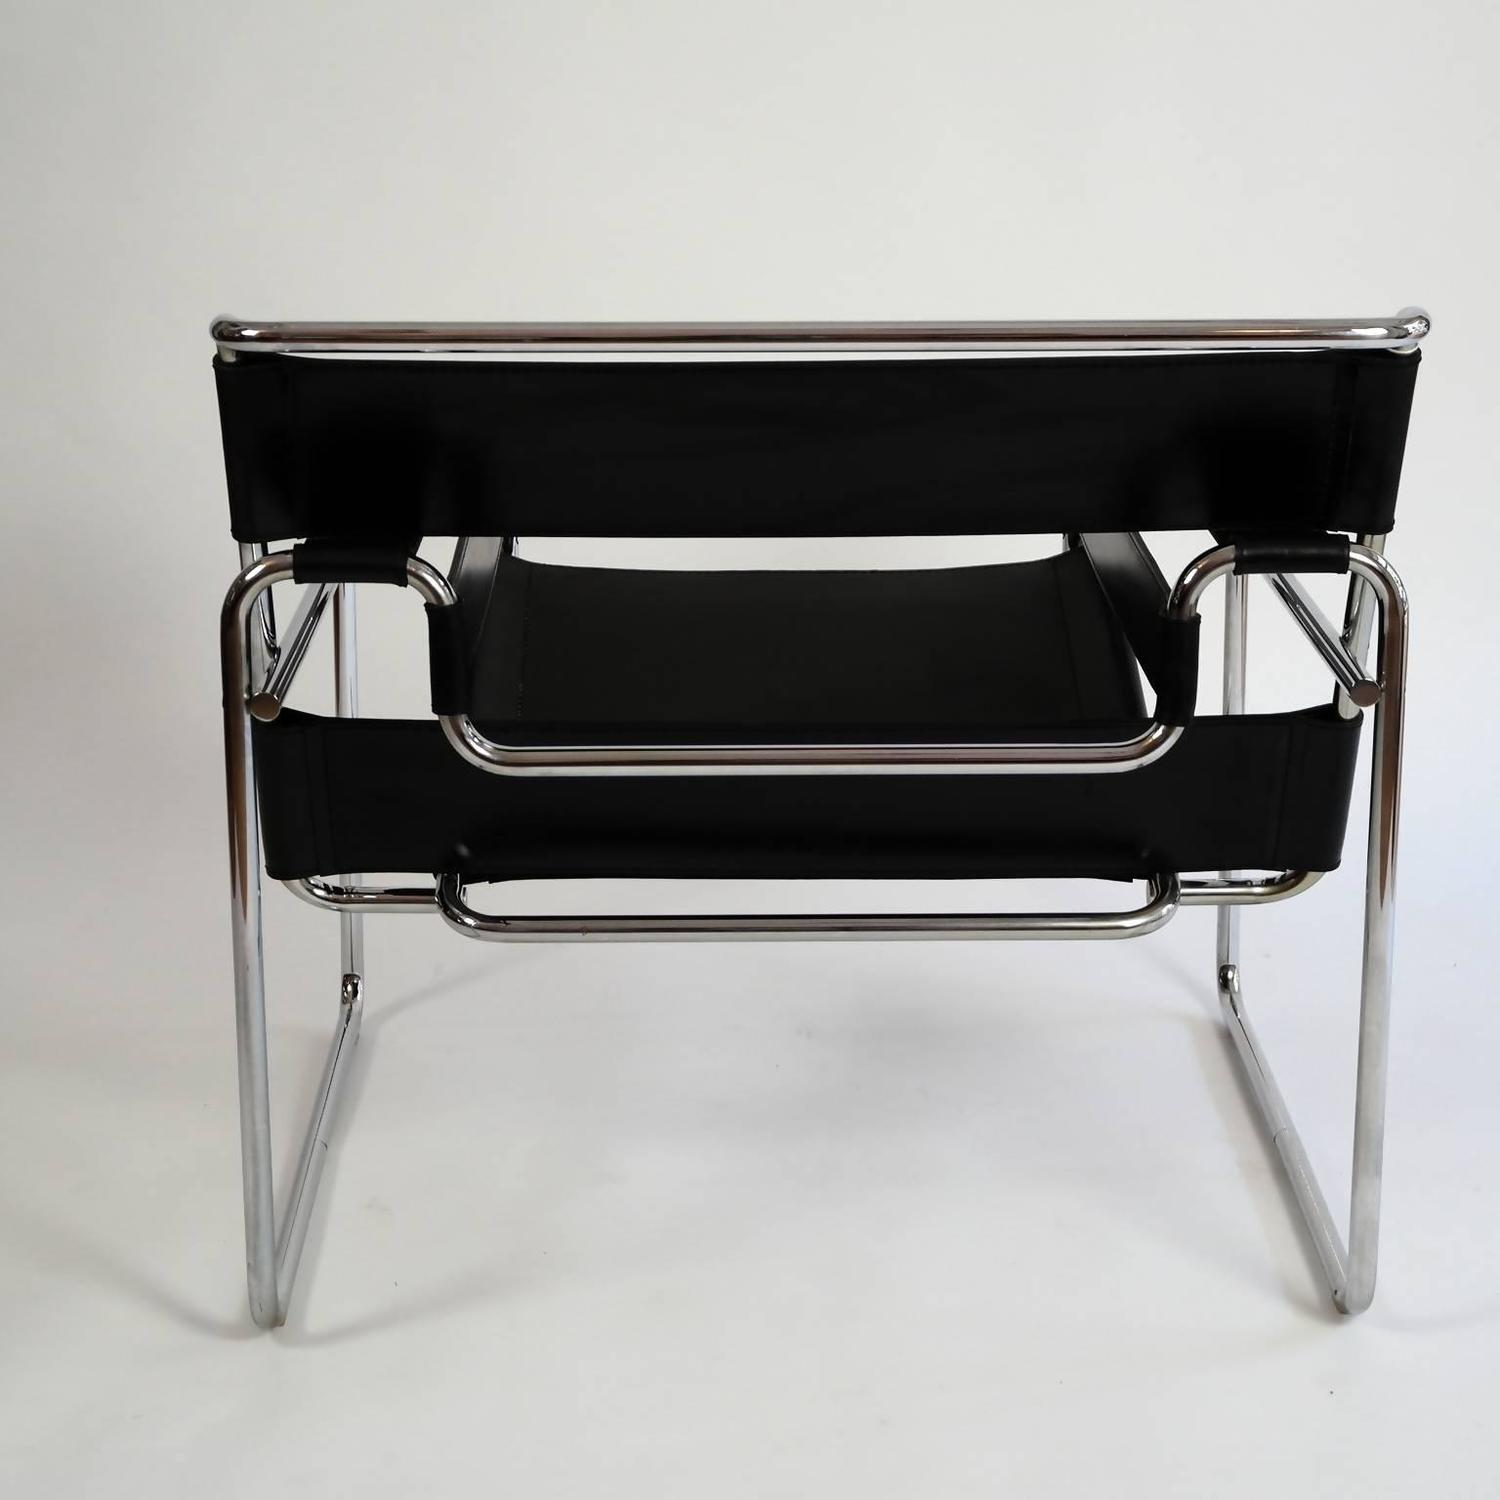 Original bauhaus wassily lounge chair by marcel breuer for sale at